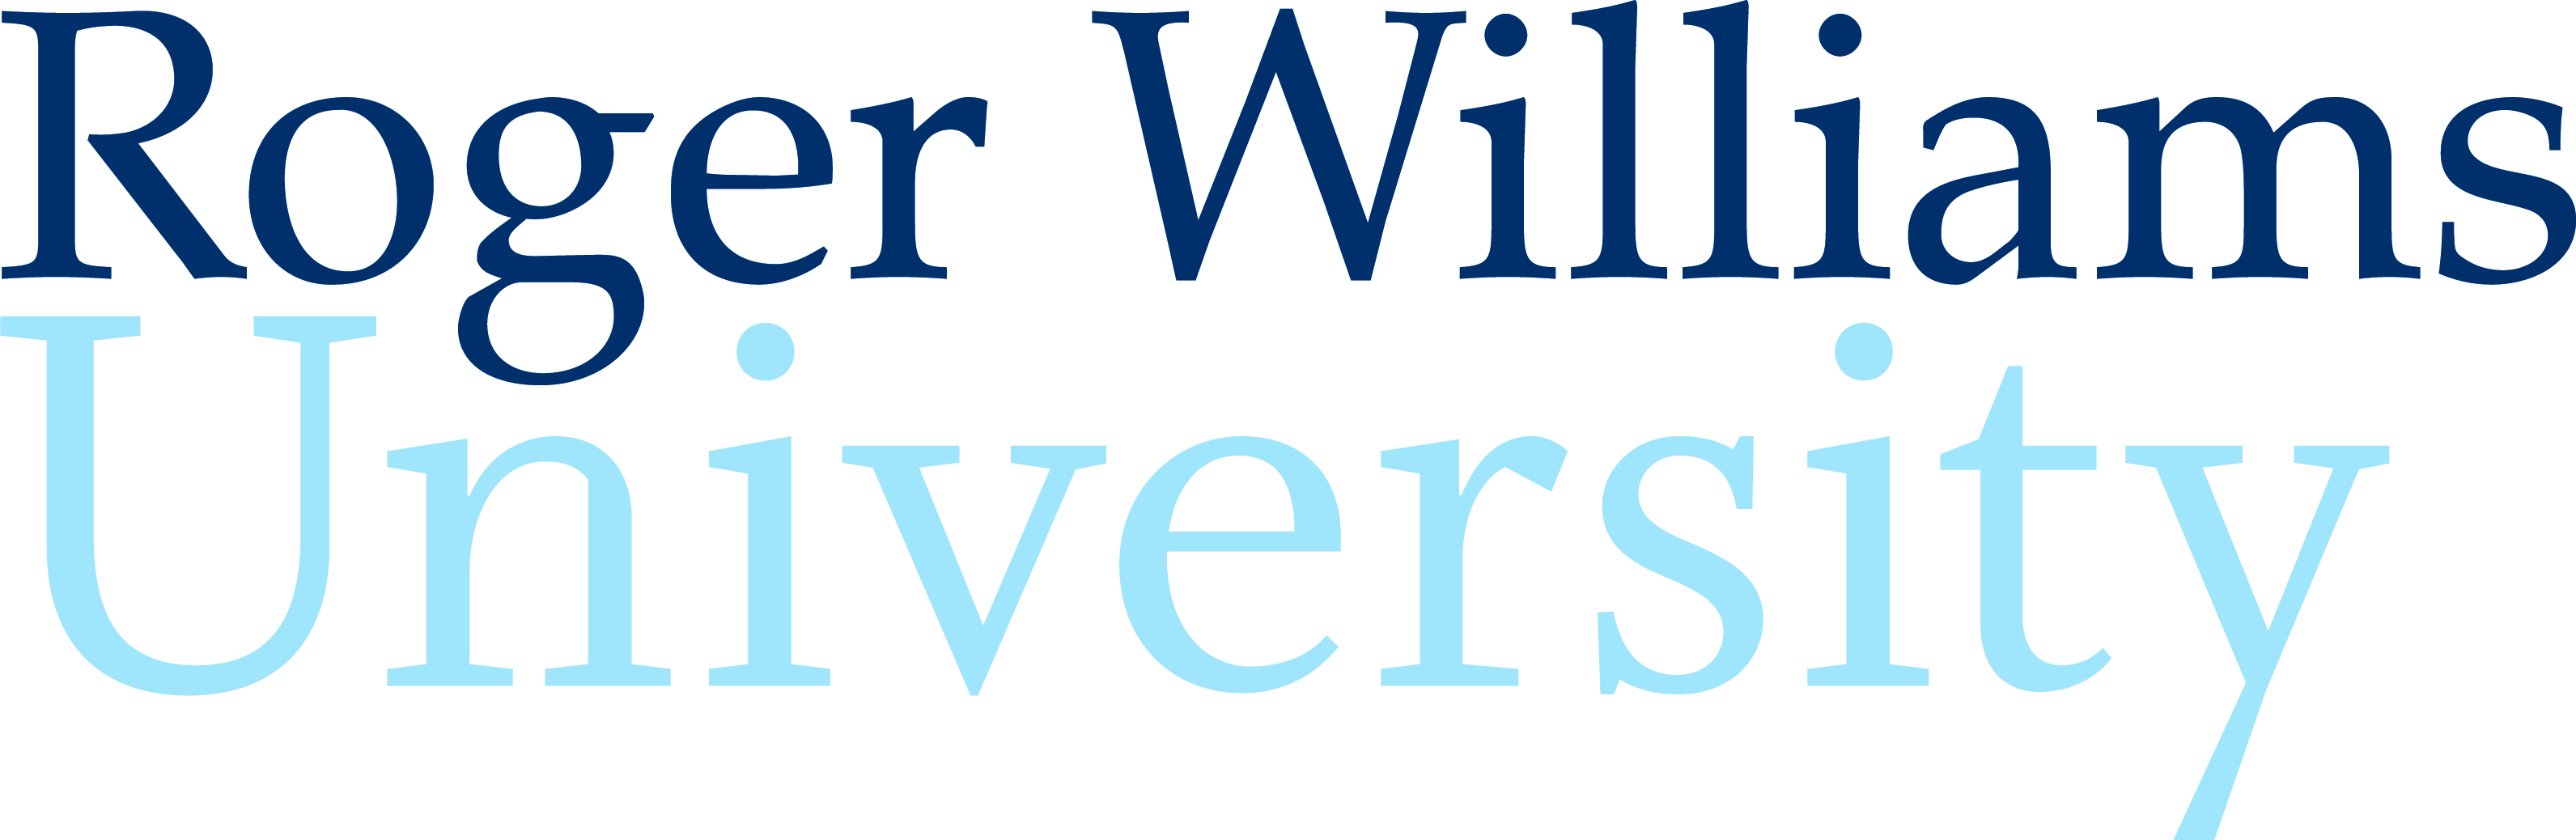 Thanks, Roger Williams University, for sponsoring our 50th anniversary celebration!